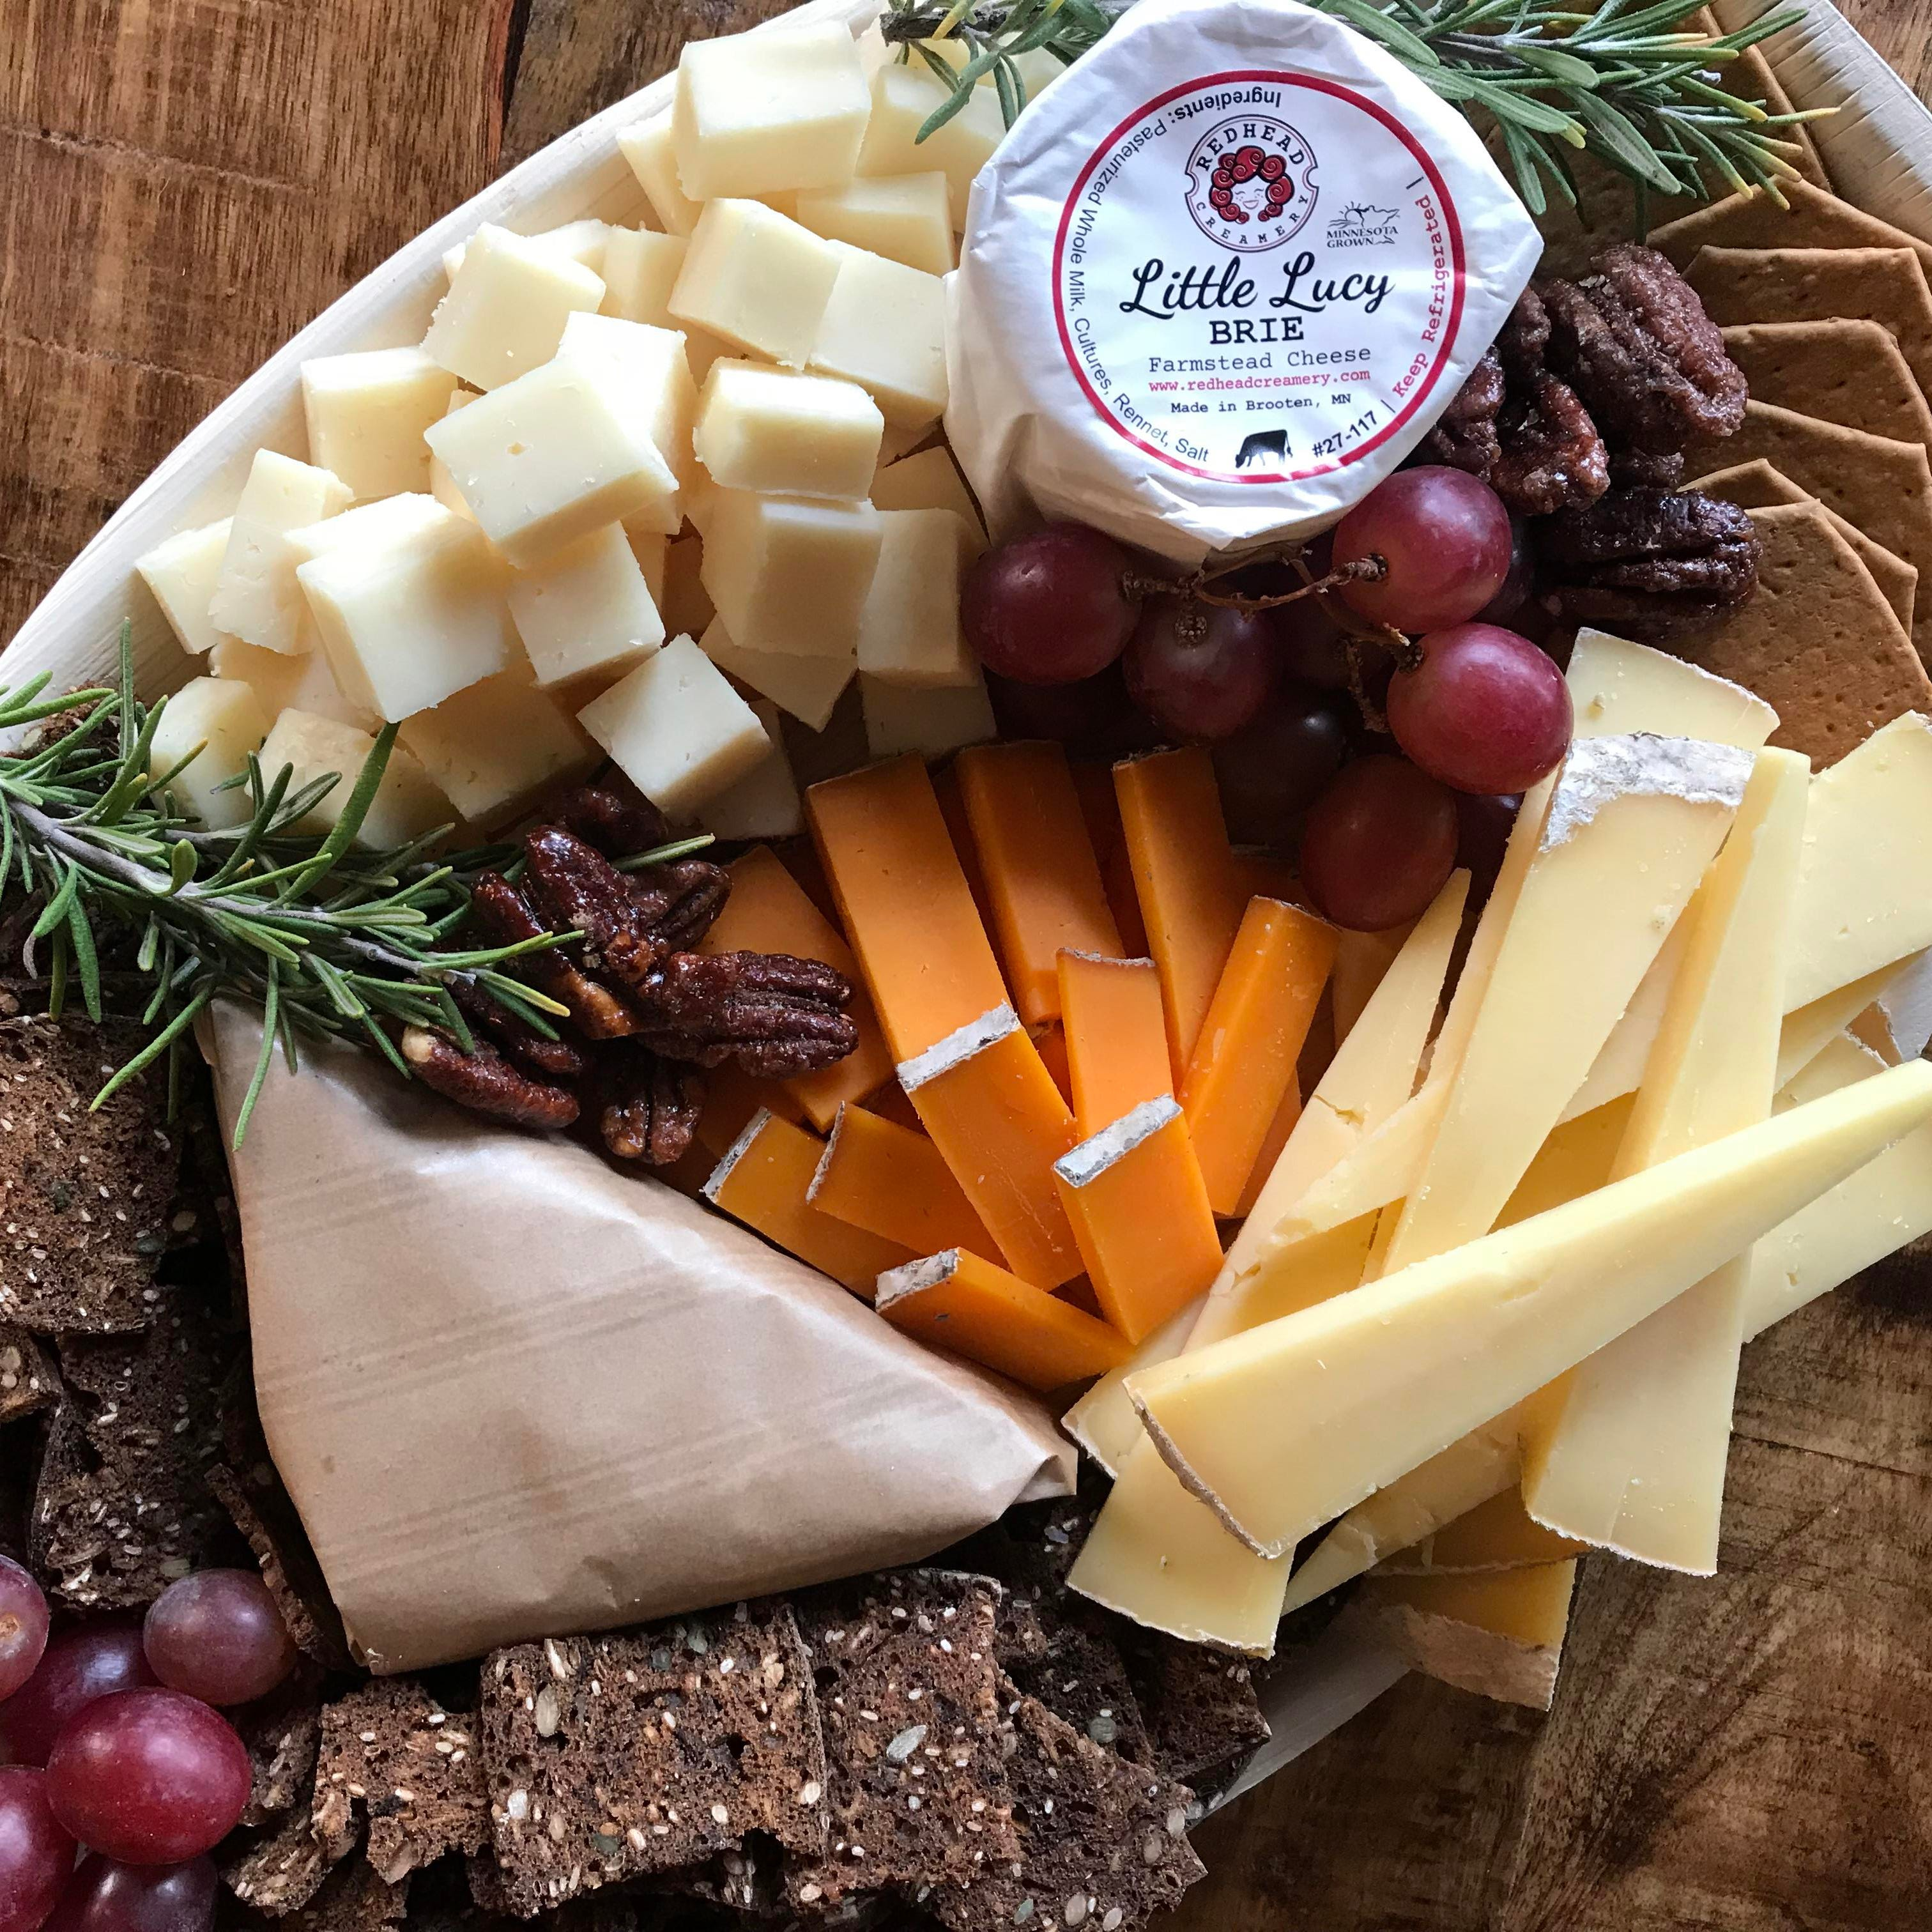 A well-planned cheeseboard treats holiday guests to Wisconsin's best